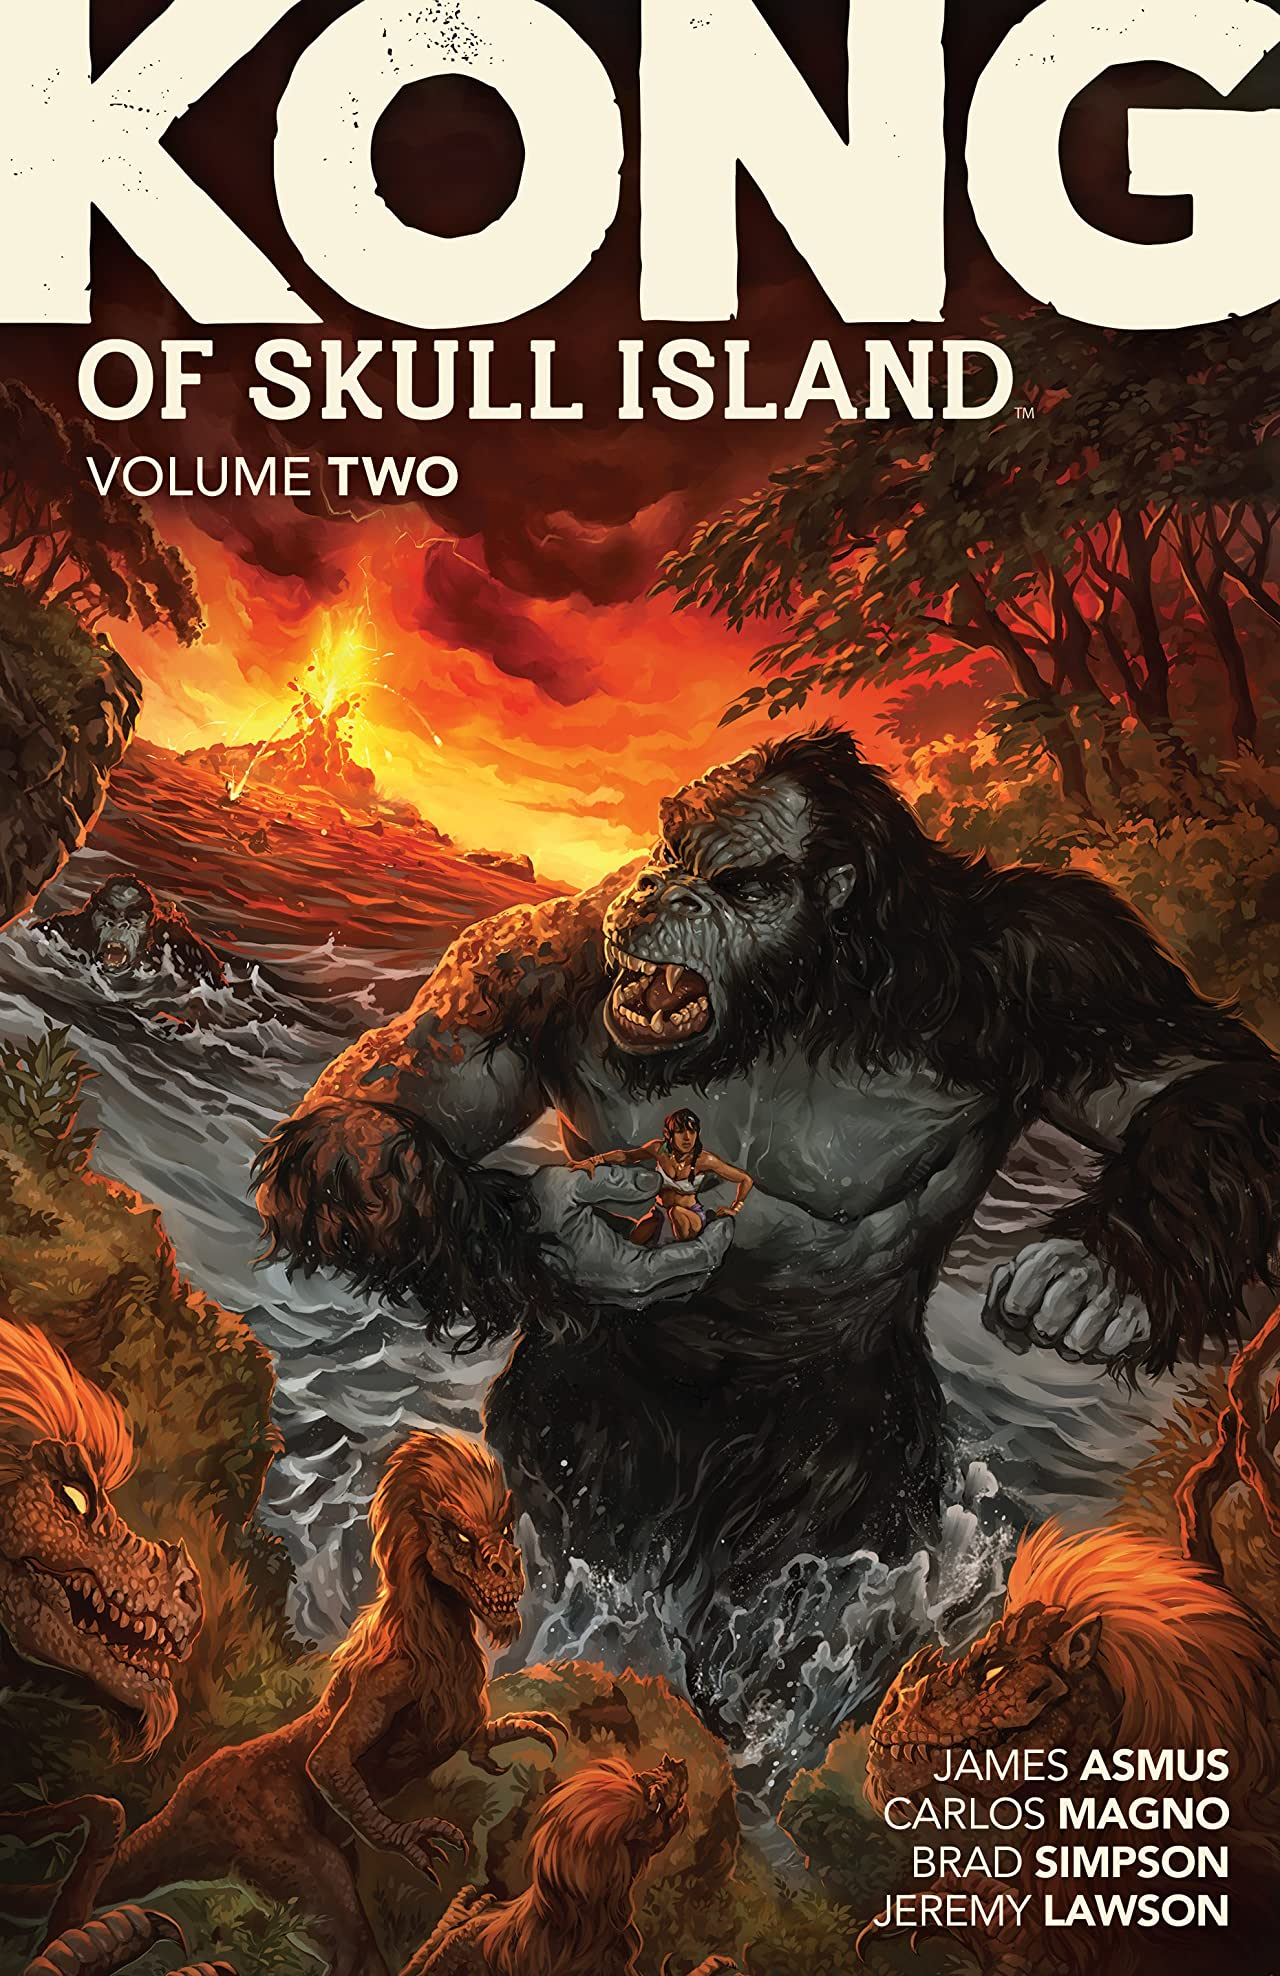 Kong of Skull Island Vol. 2